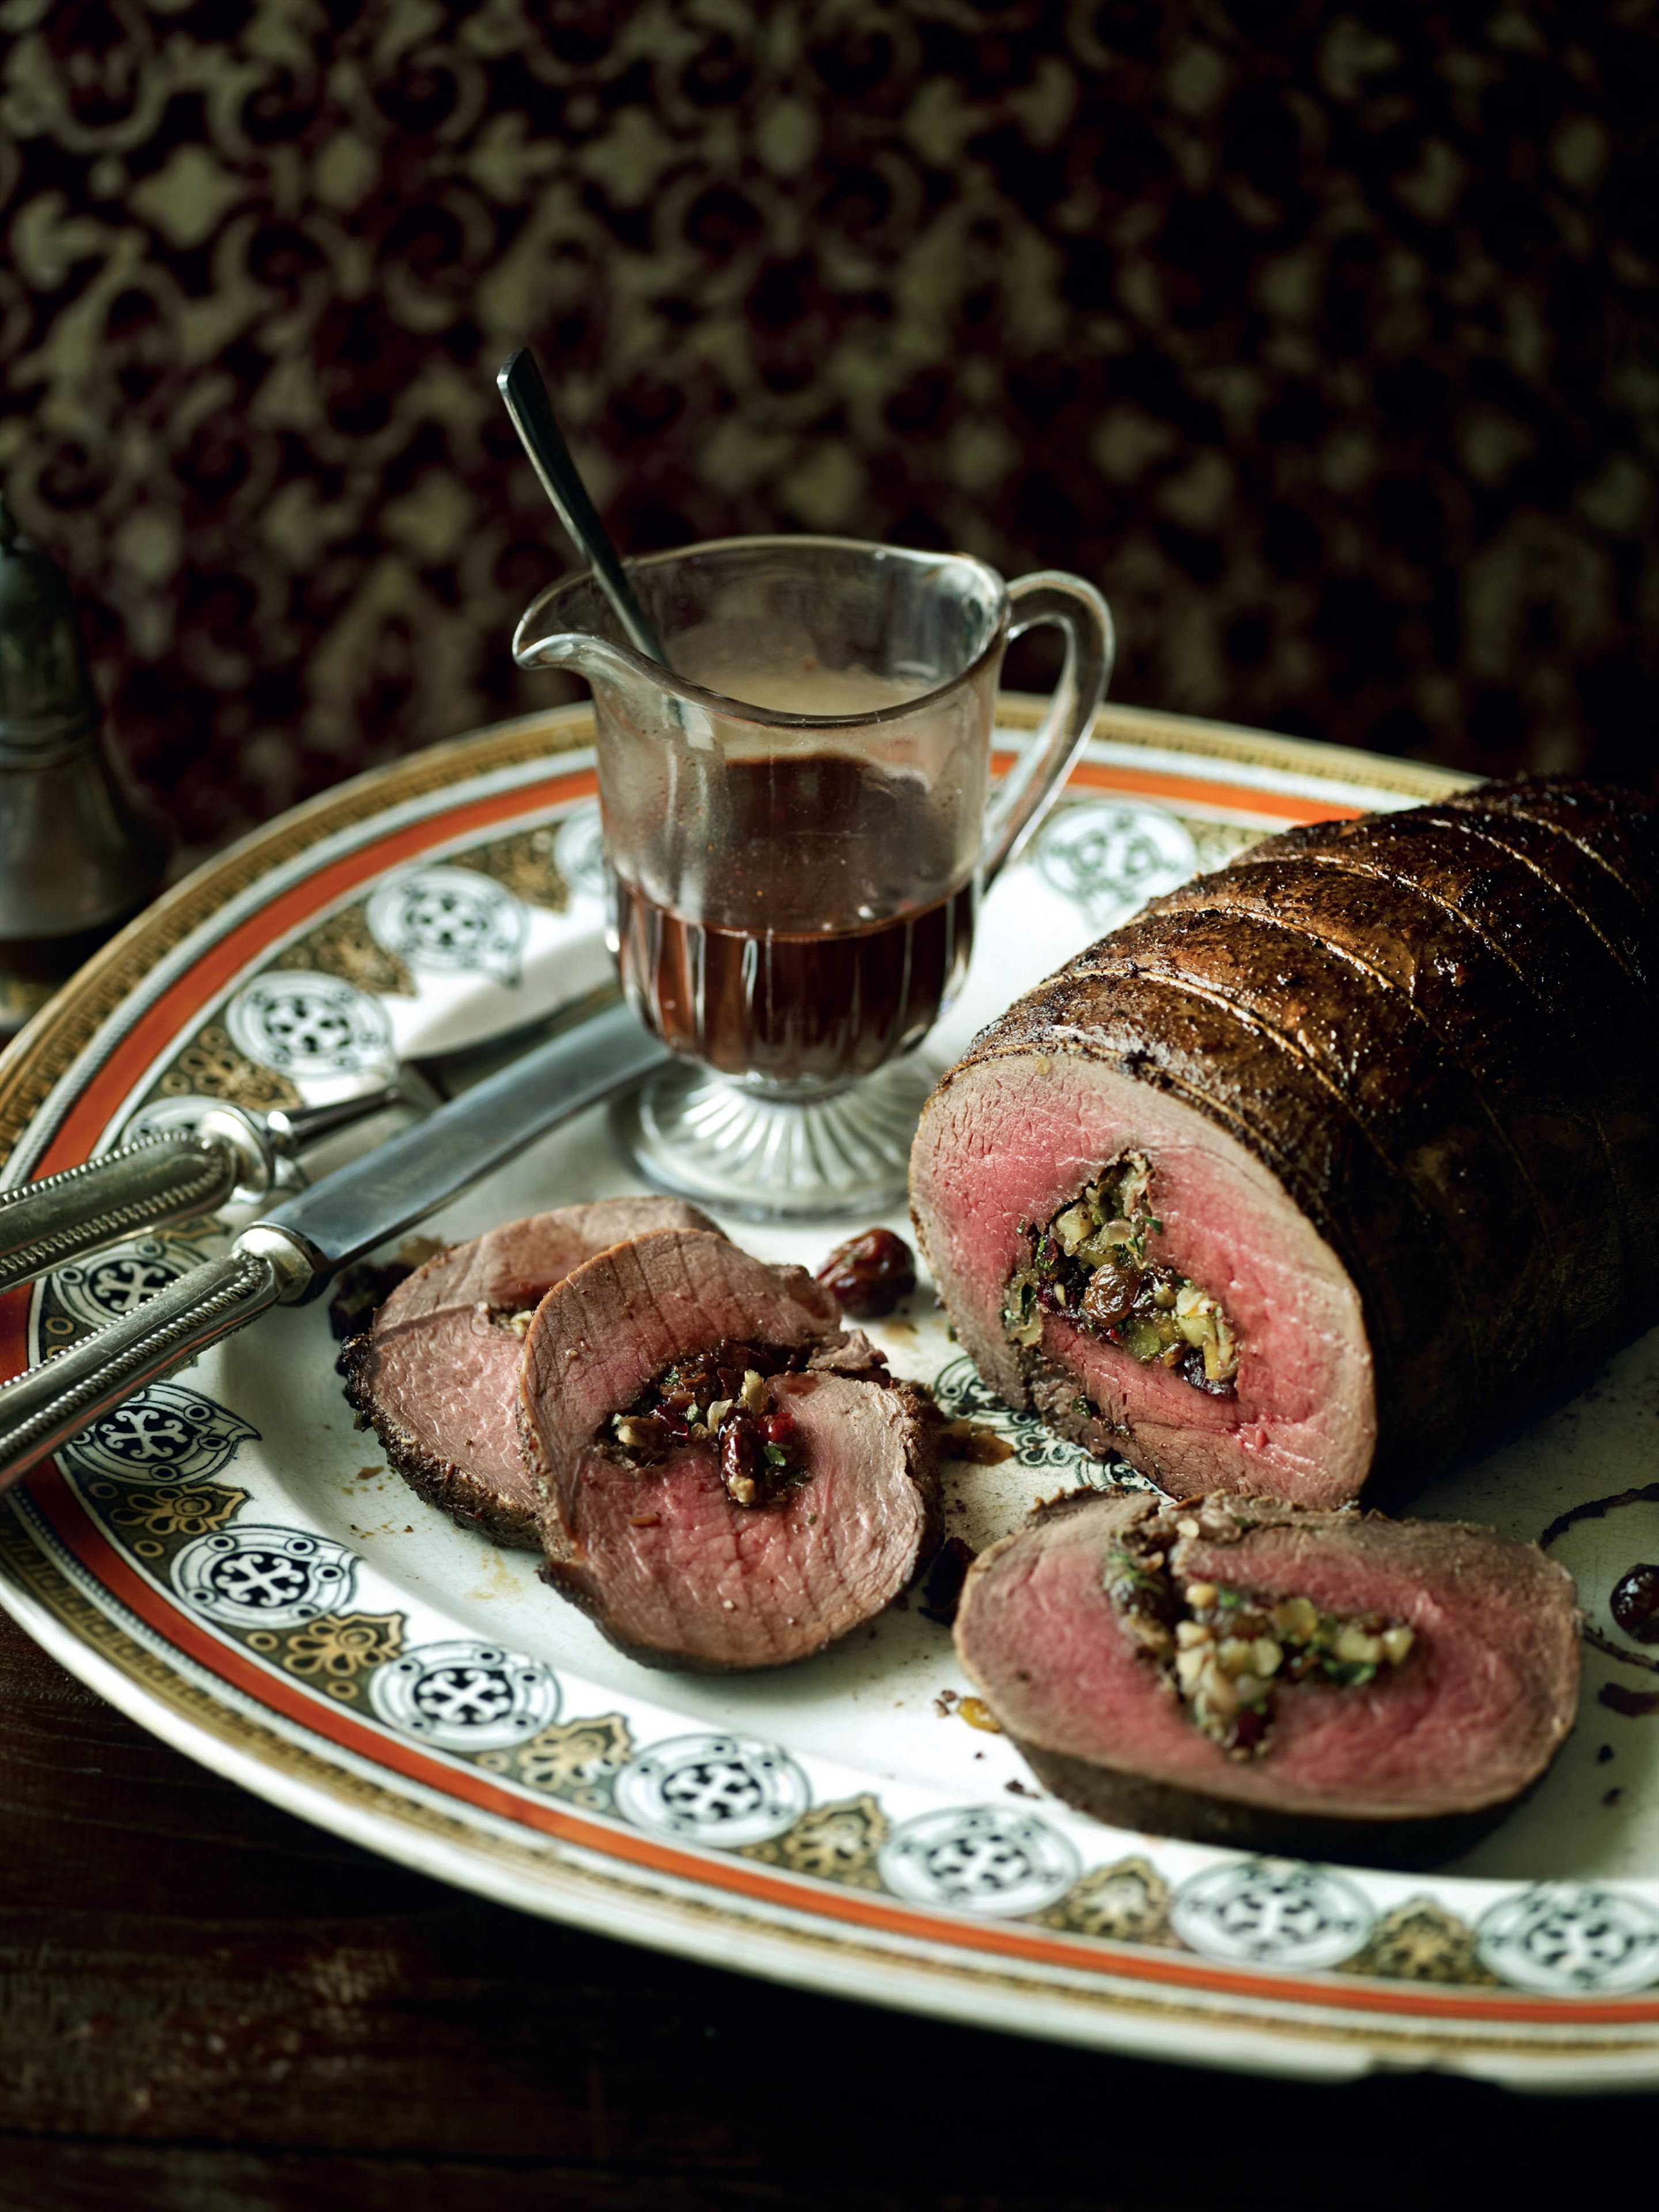 Stuffed haunch of venison